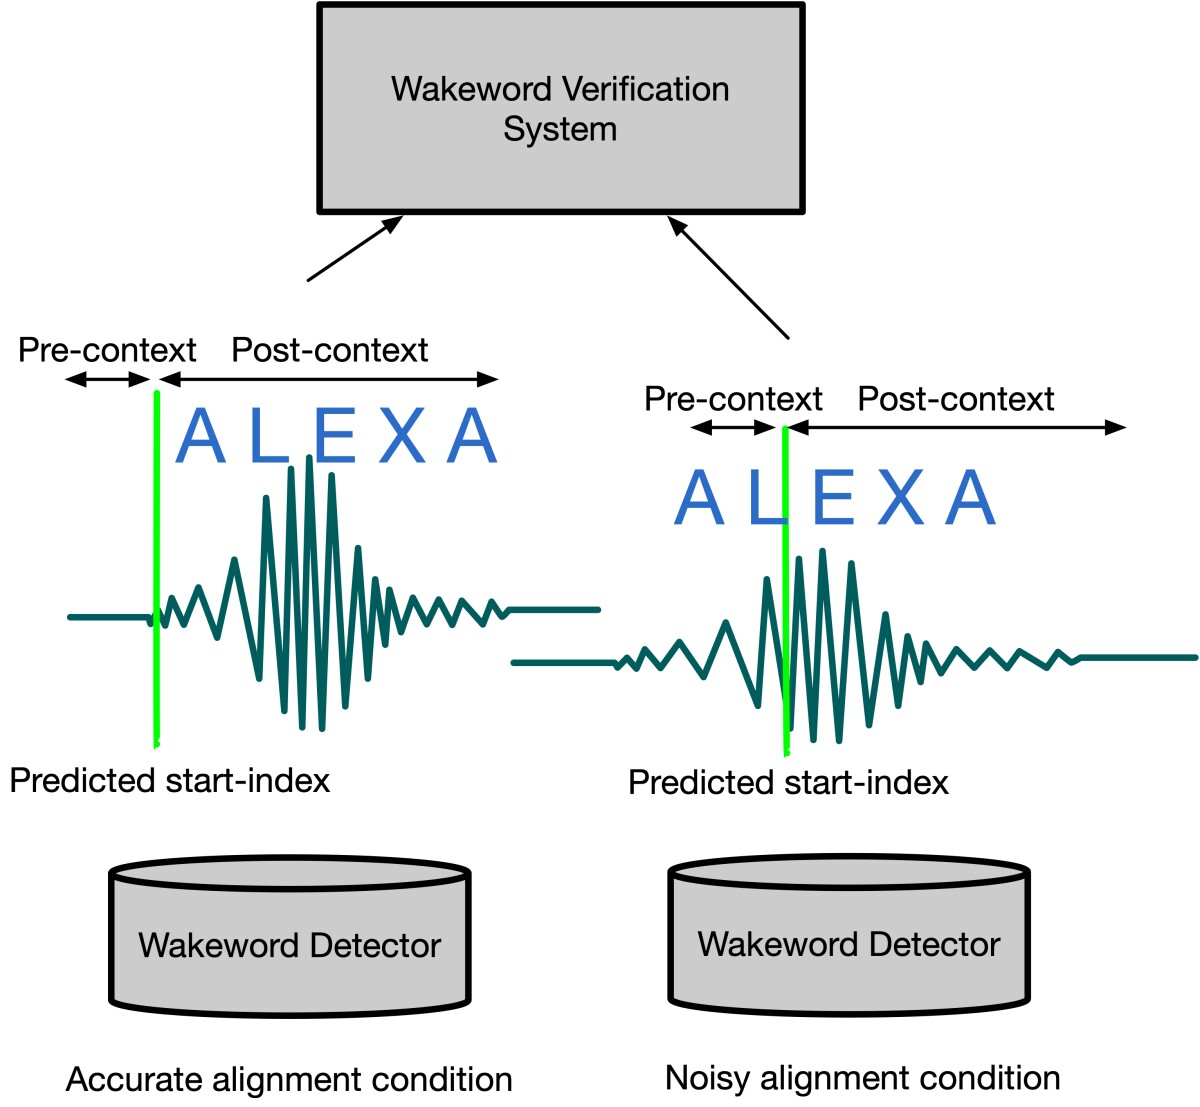 Model depicting variations in alignment of wake word signals send to the cloud for verification.